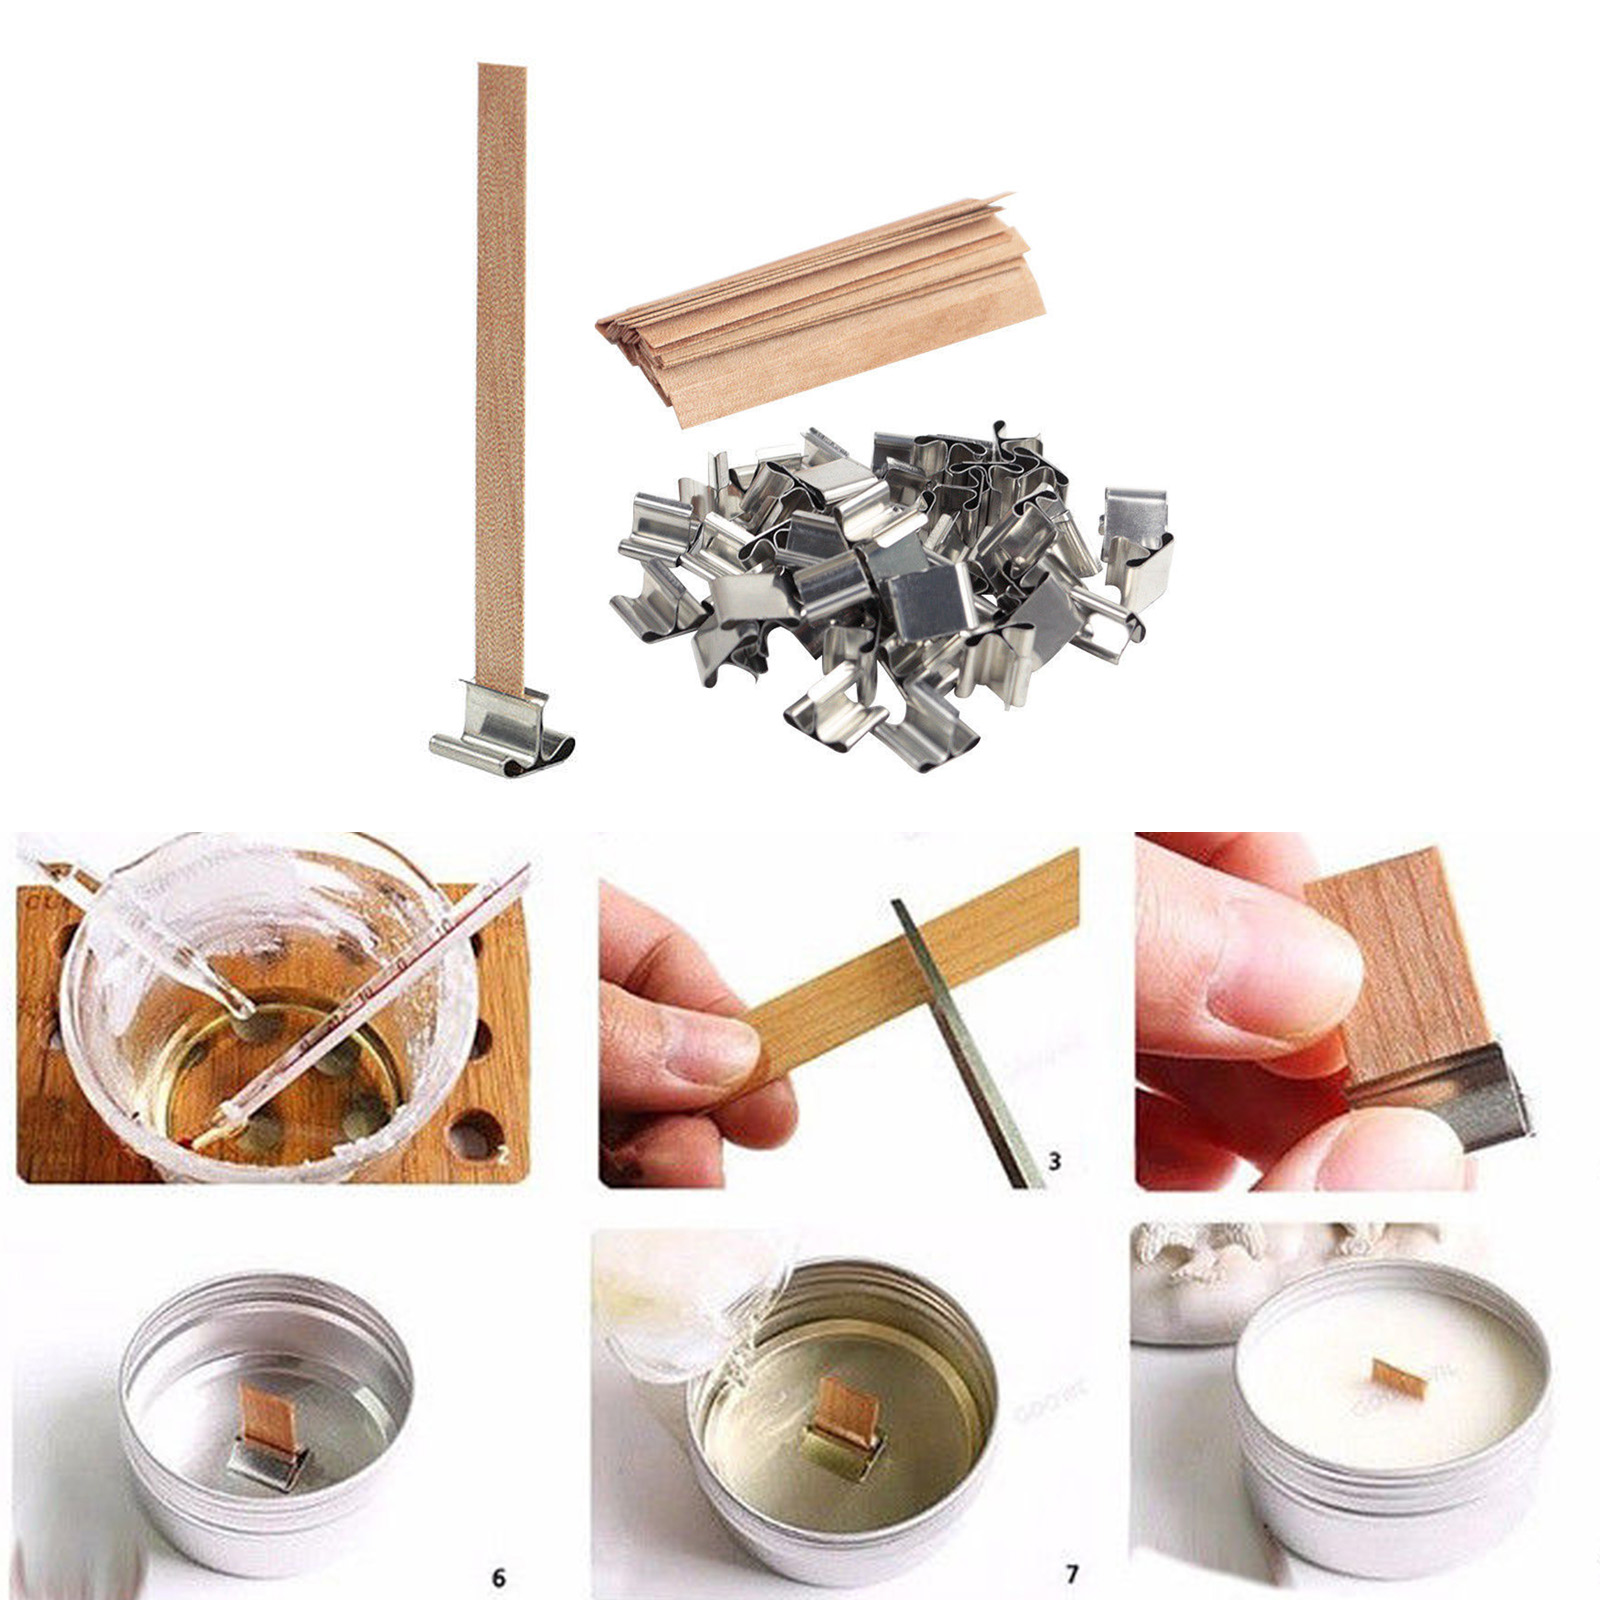 Wooden Candle Wicks Diy: Set Of 50 13/15cm Wooden Candle Wick Core With Sustainer